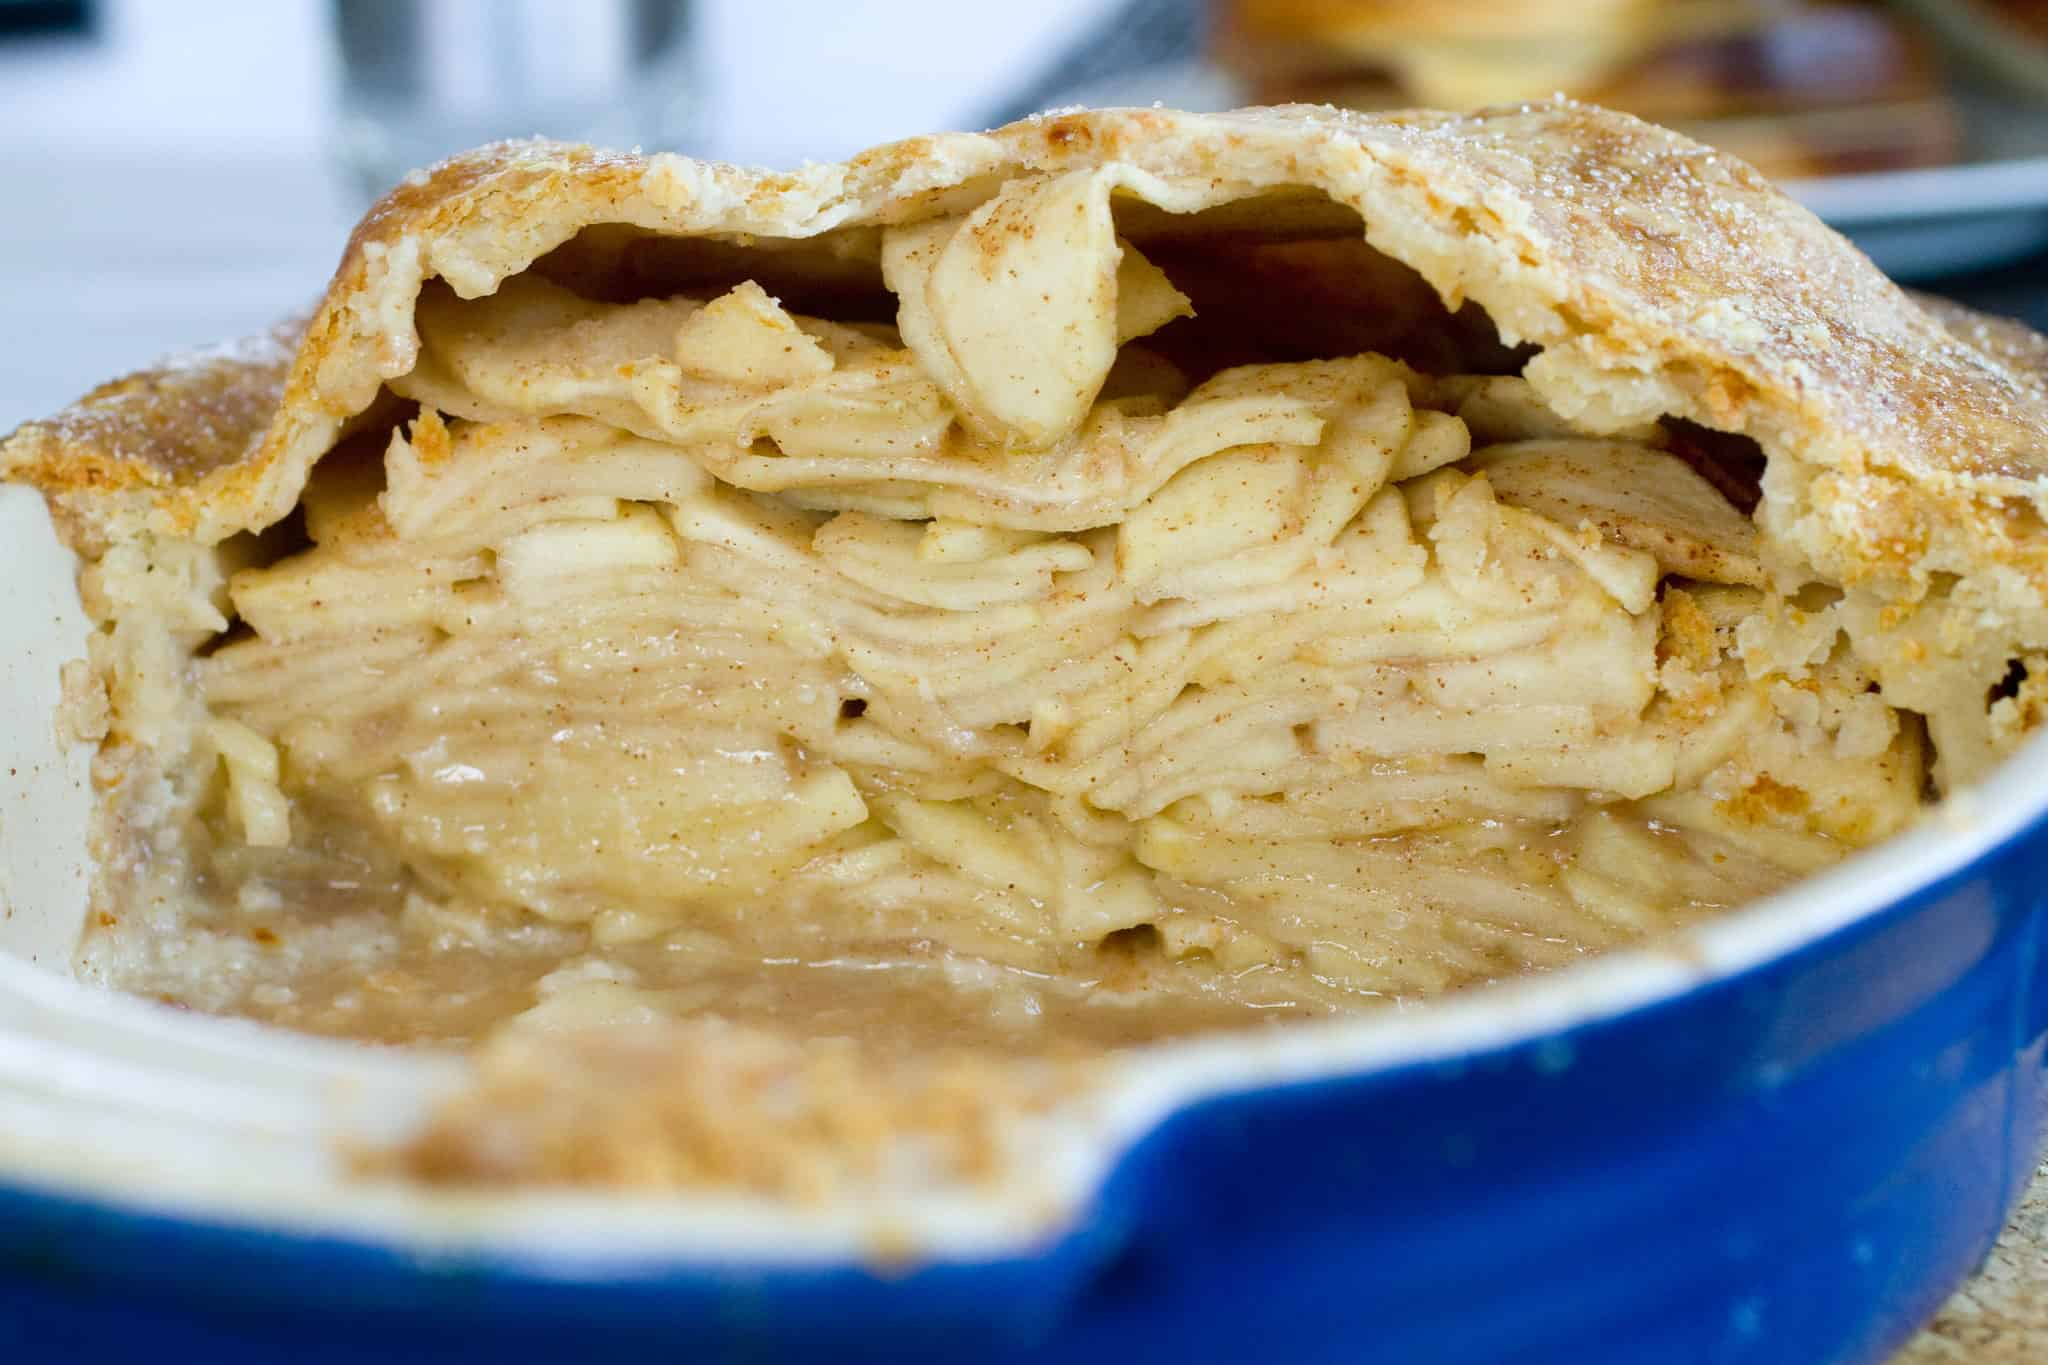 Apple pie and cheddar